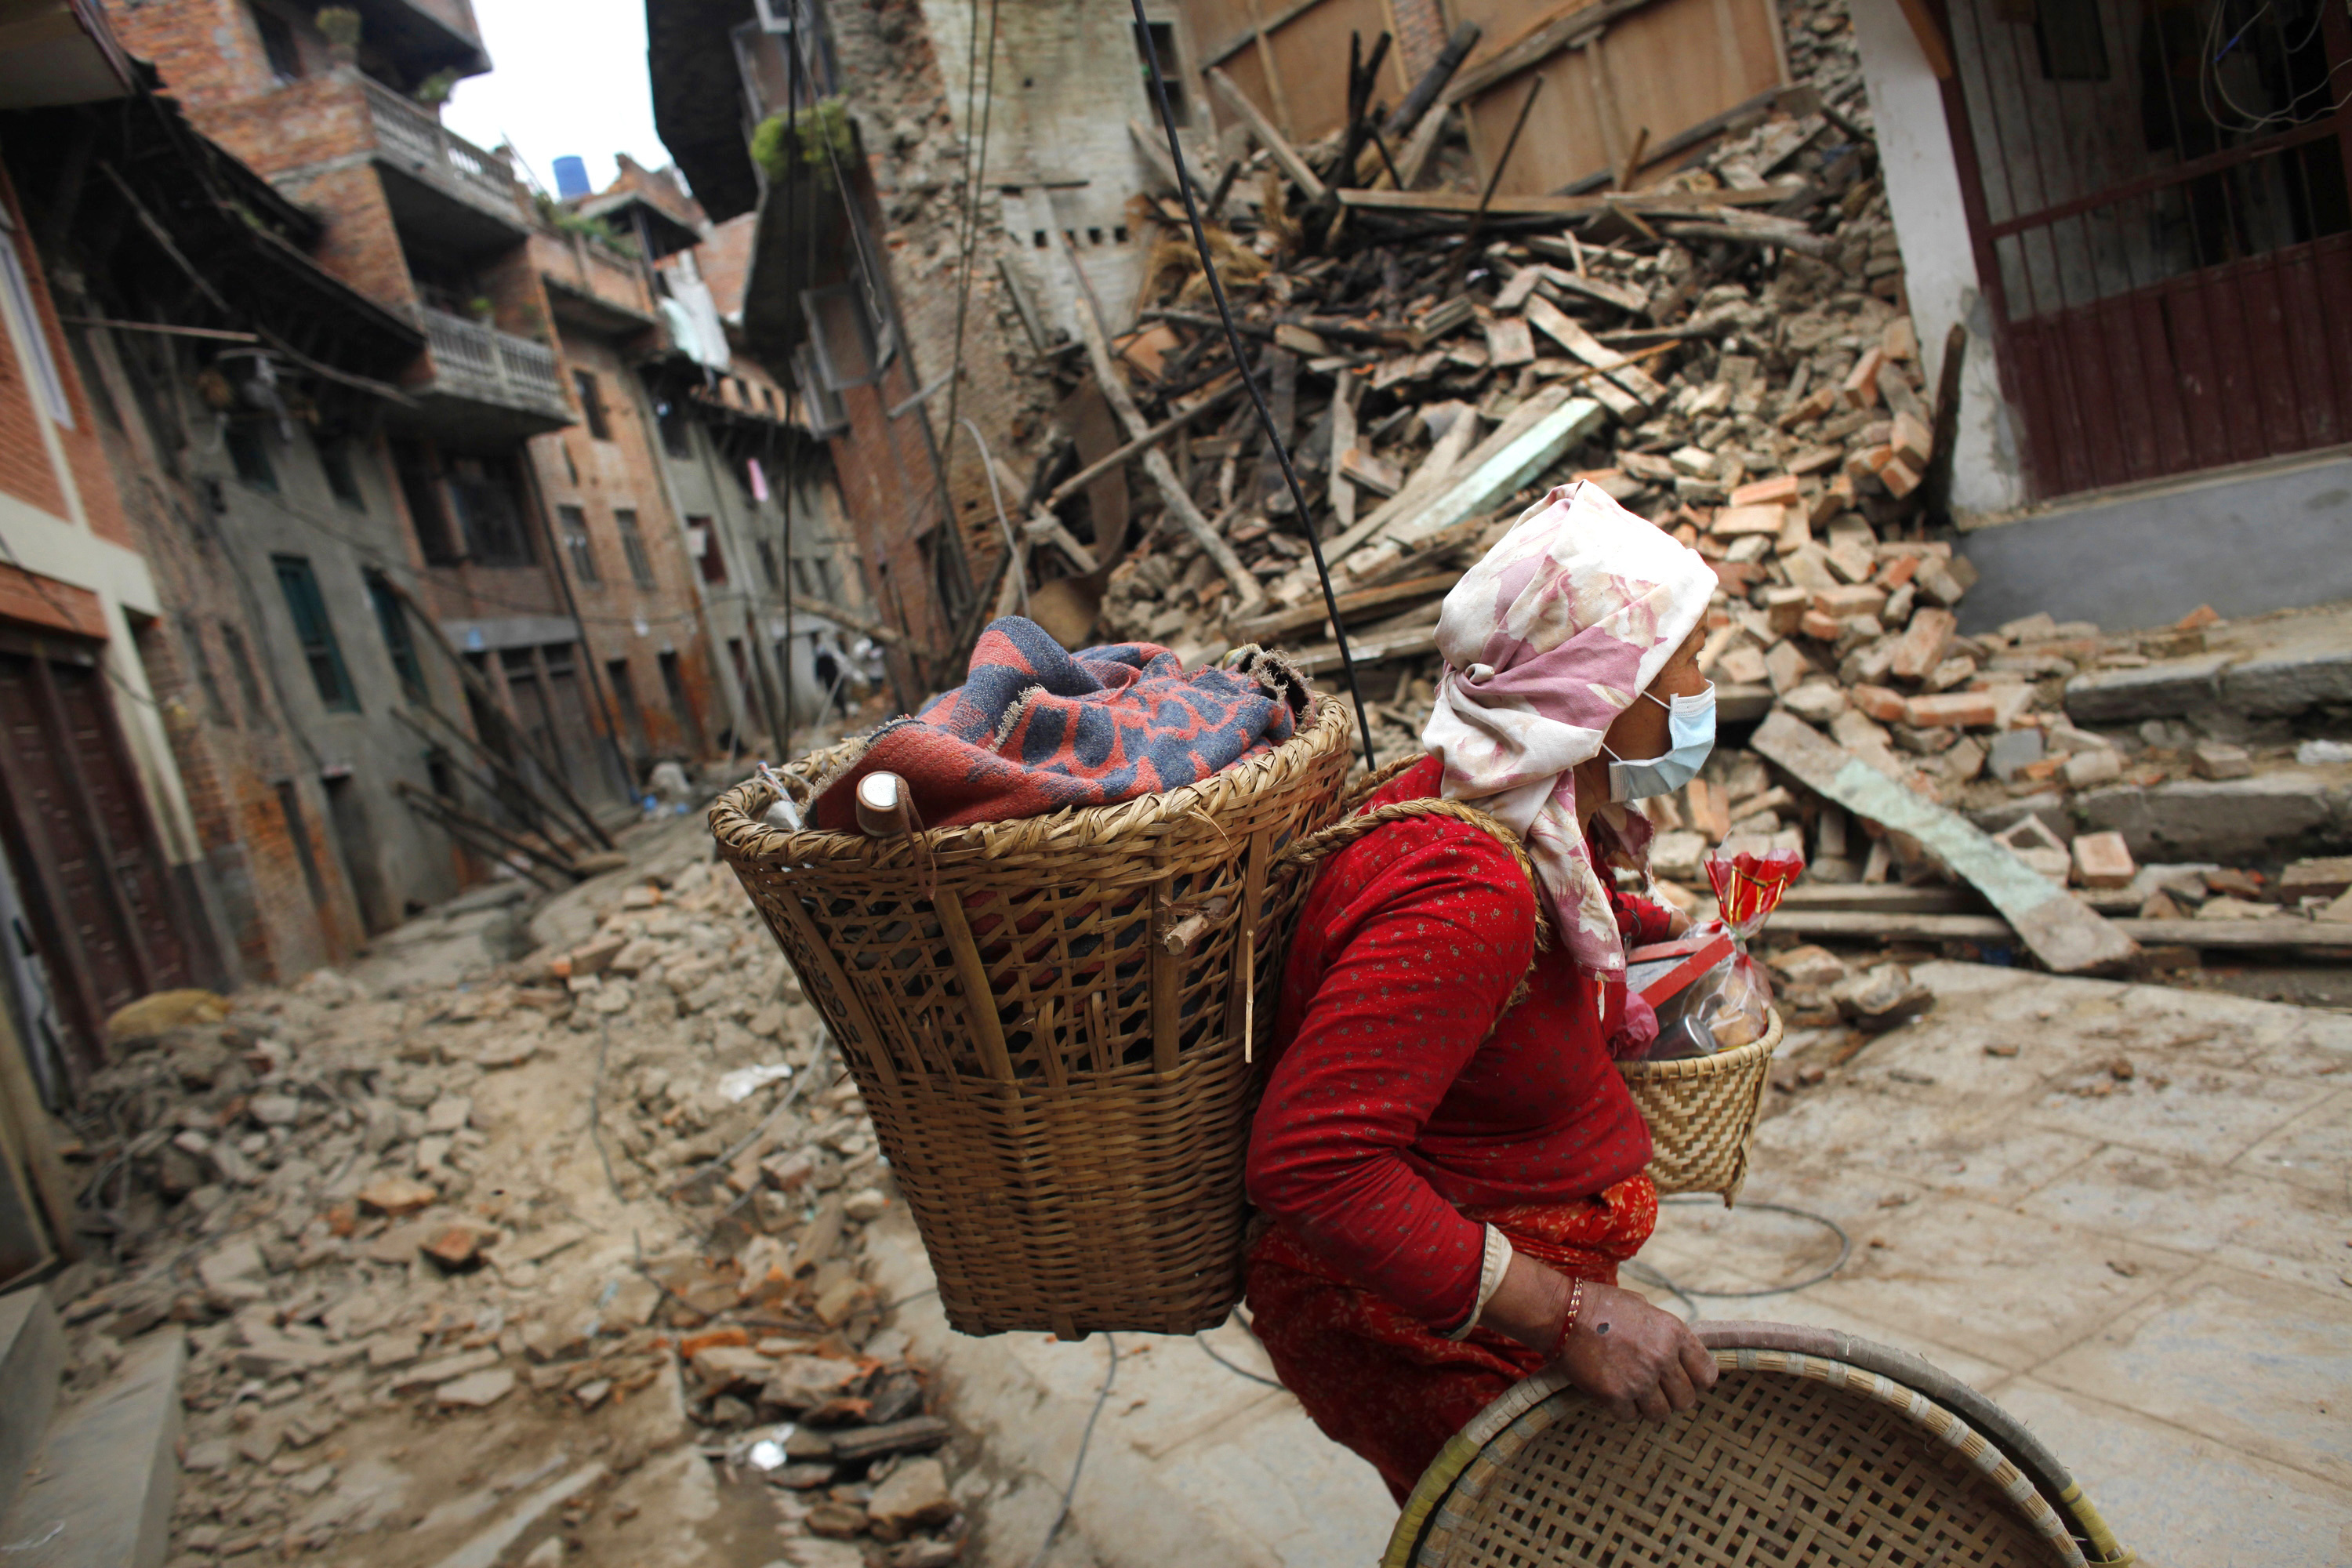 FILE - In this Thursday, April 30, 2015, file photo, a Nepalese woman salvages her belongings from her damaged house in earthquake in Khokana, Nepal.  The violence of the 7.8-magnitude earthquake left countless towns and villages across central Nepal in a shambles. Almost one year later, a shambles they remain. (AP Photo/Niranjan Shrestha)